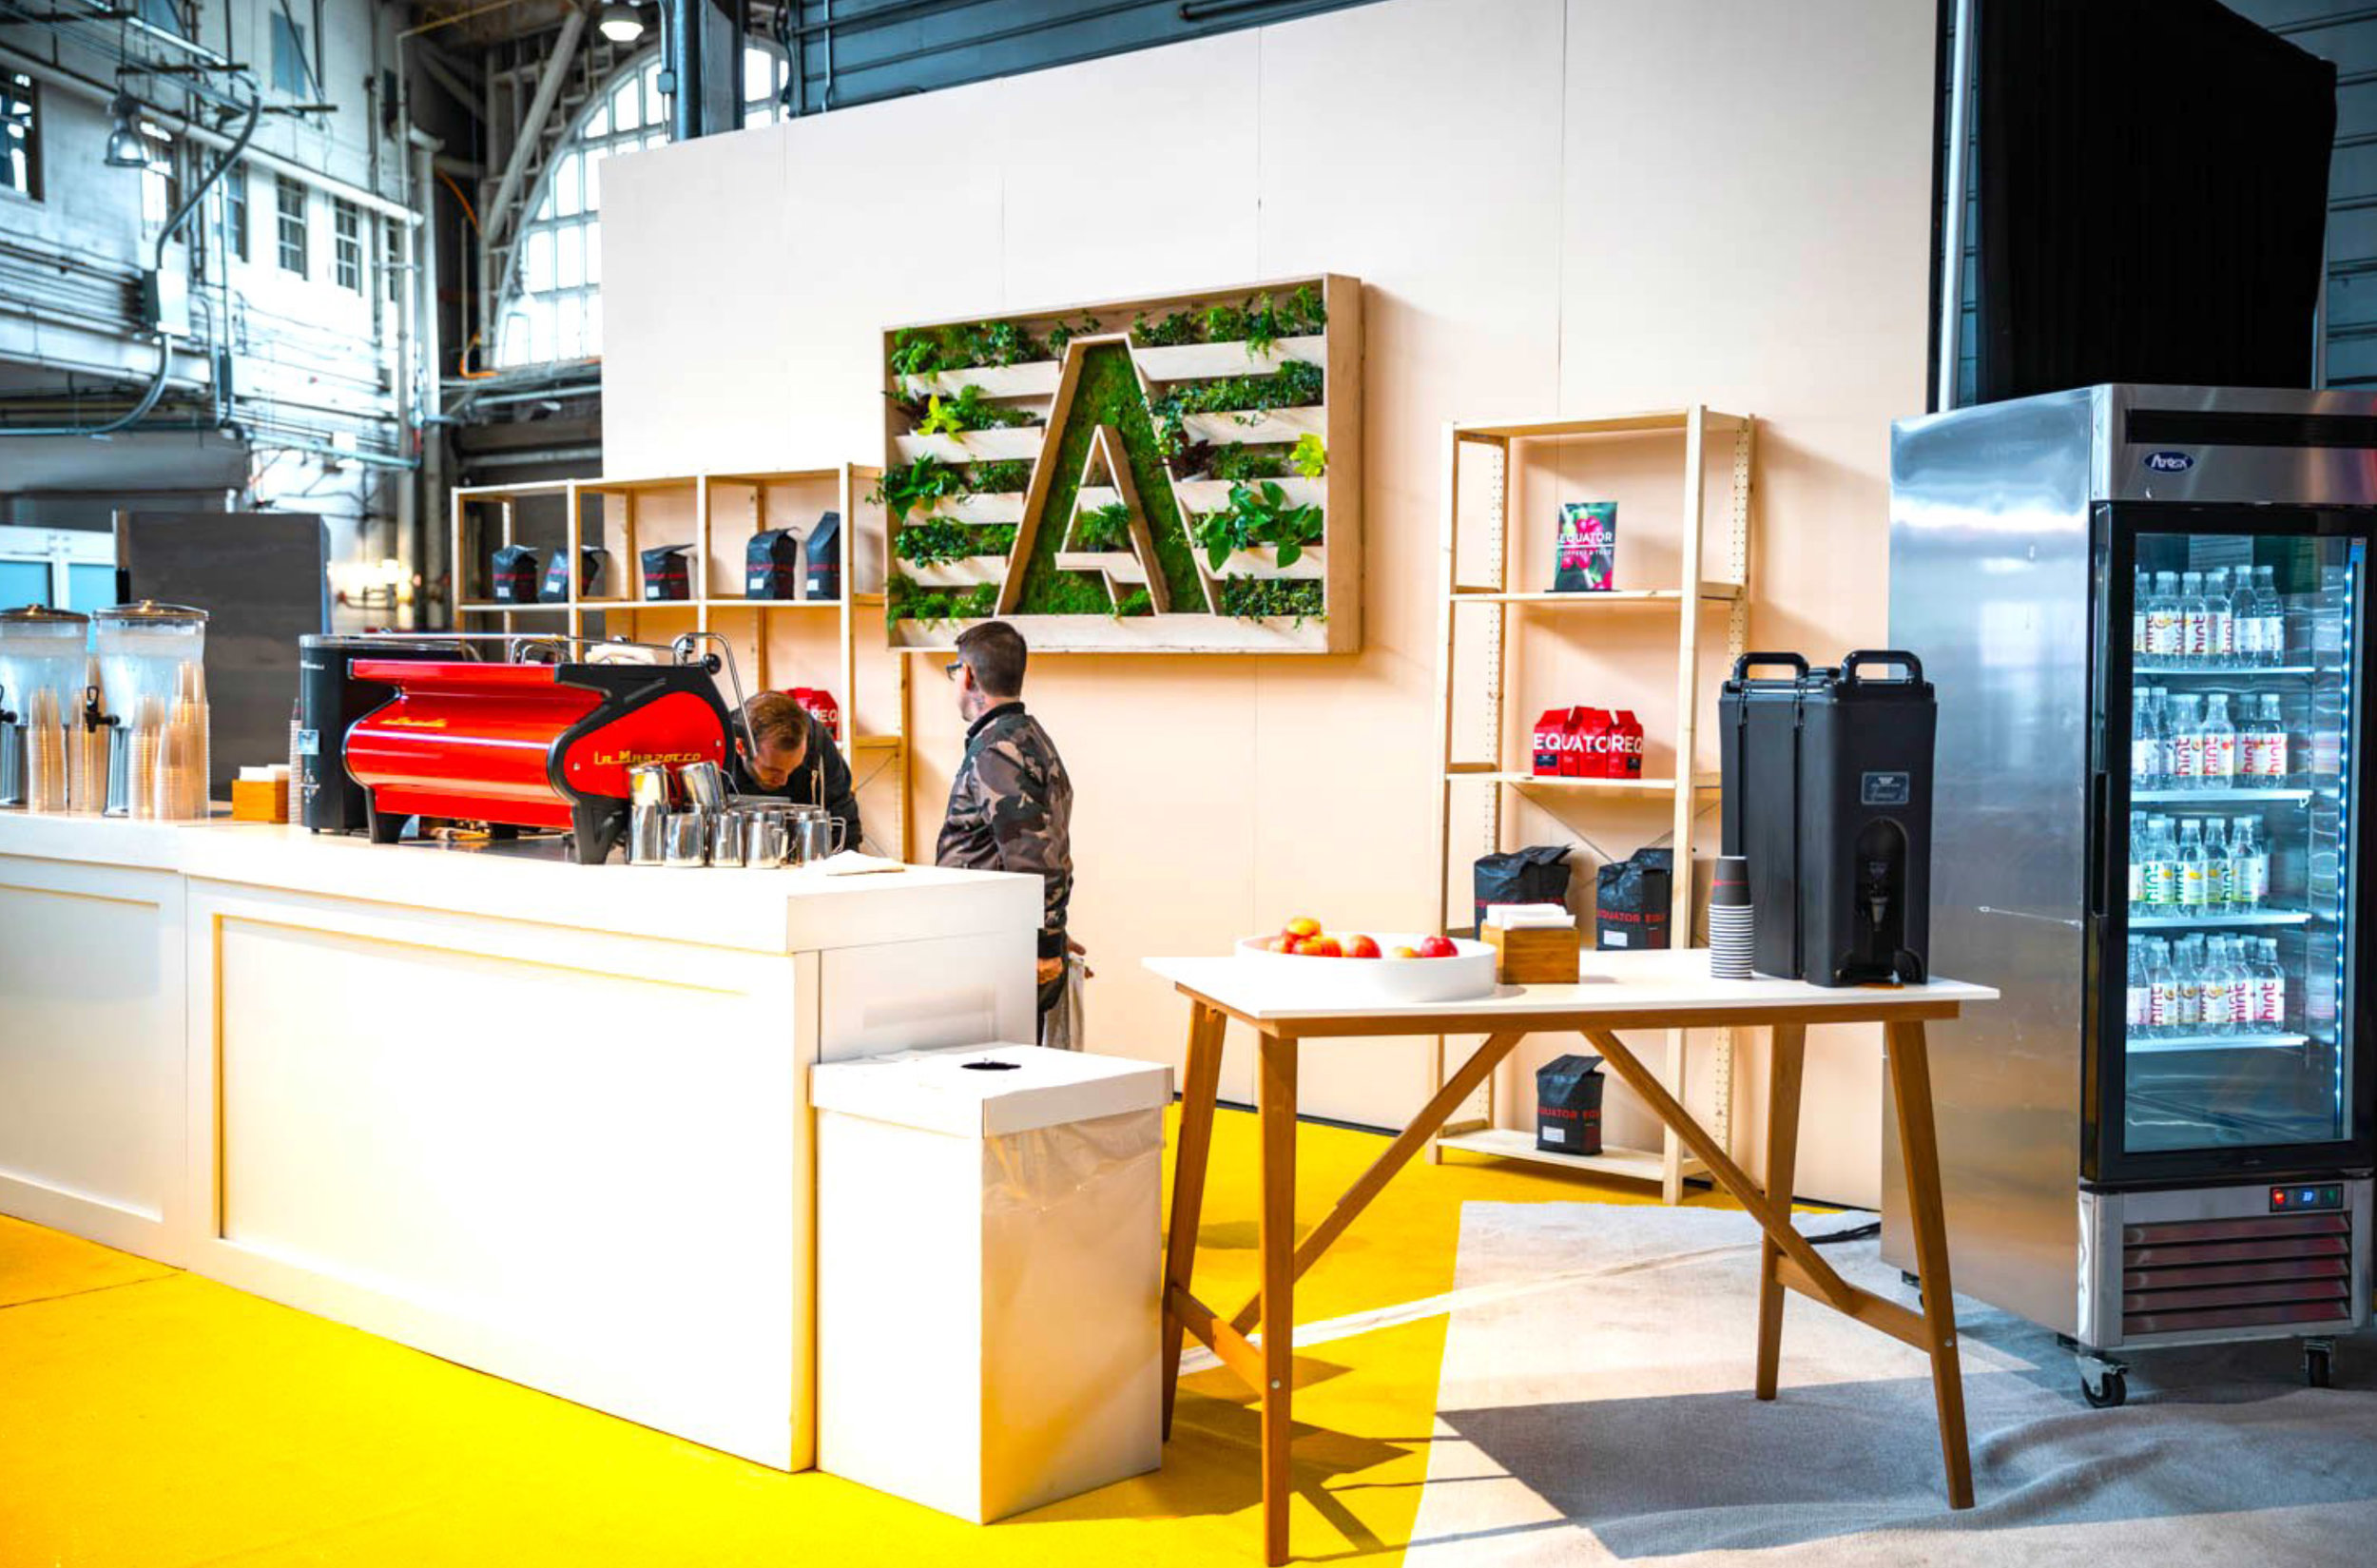 Preview Events - Adobe Design Summit - San Francisco - Brand design - conference design - pier 35 - coffee station.jpg